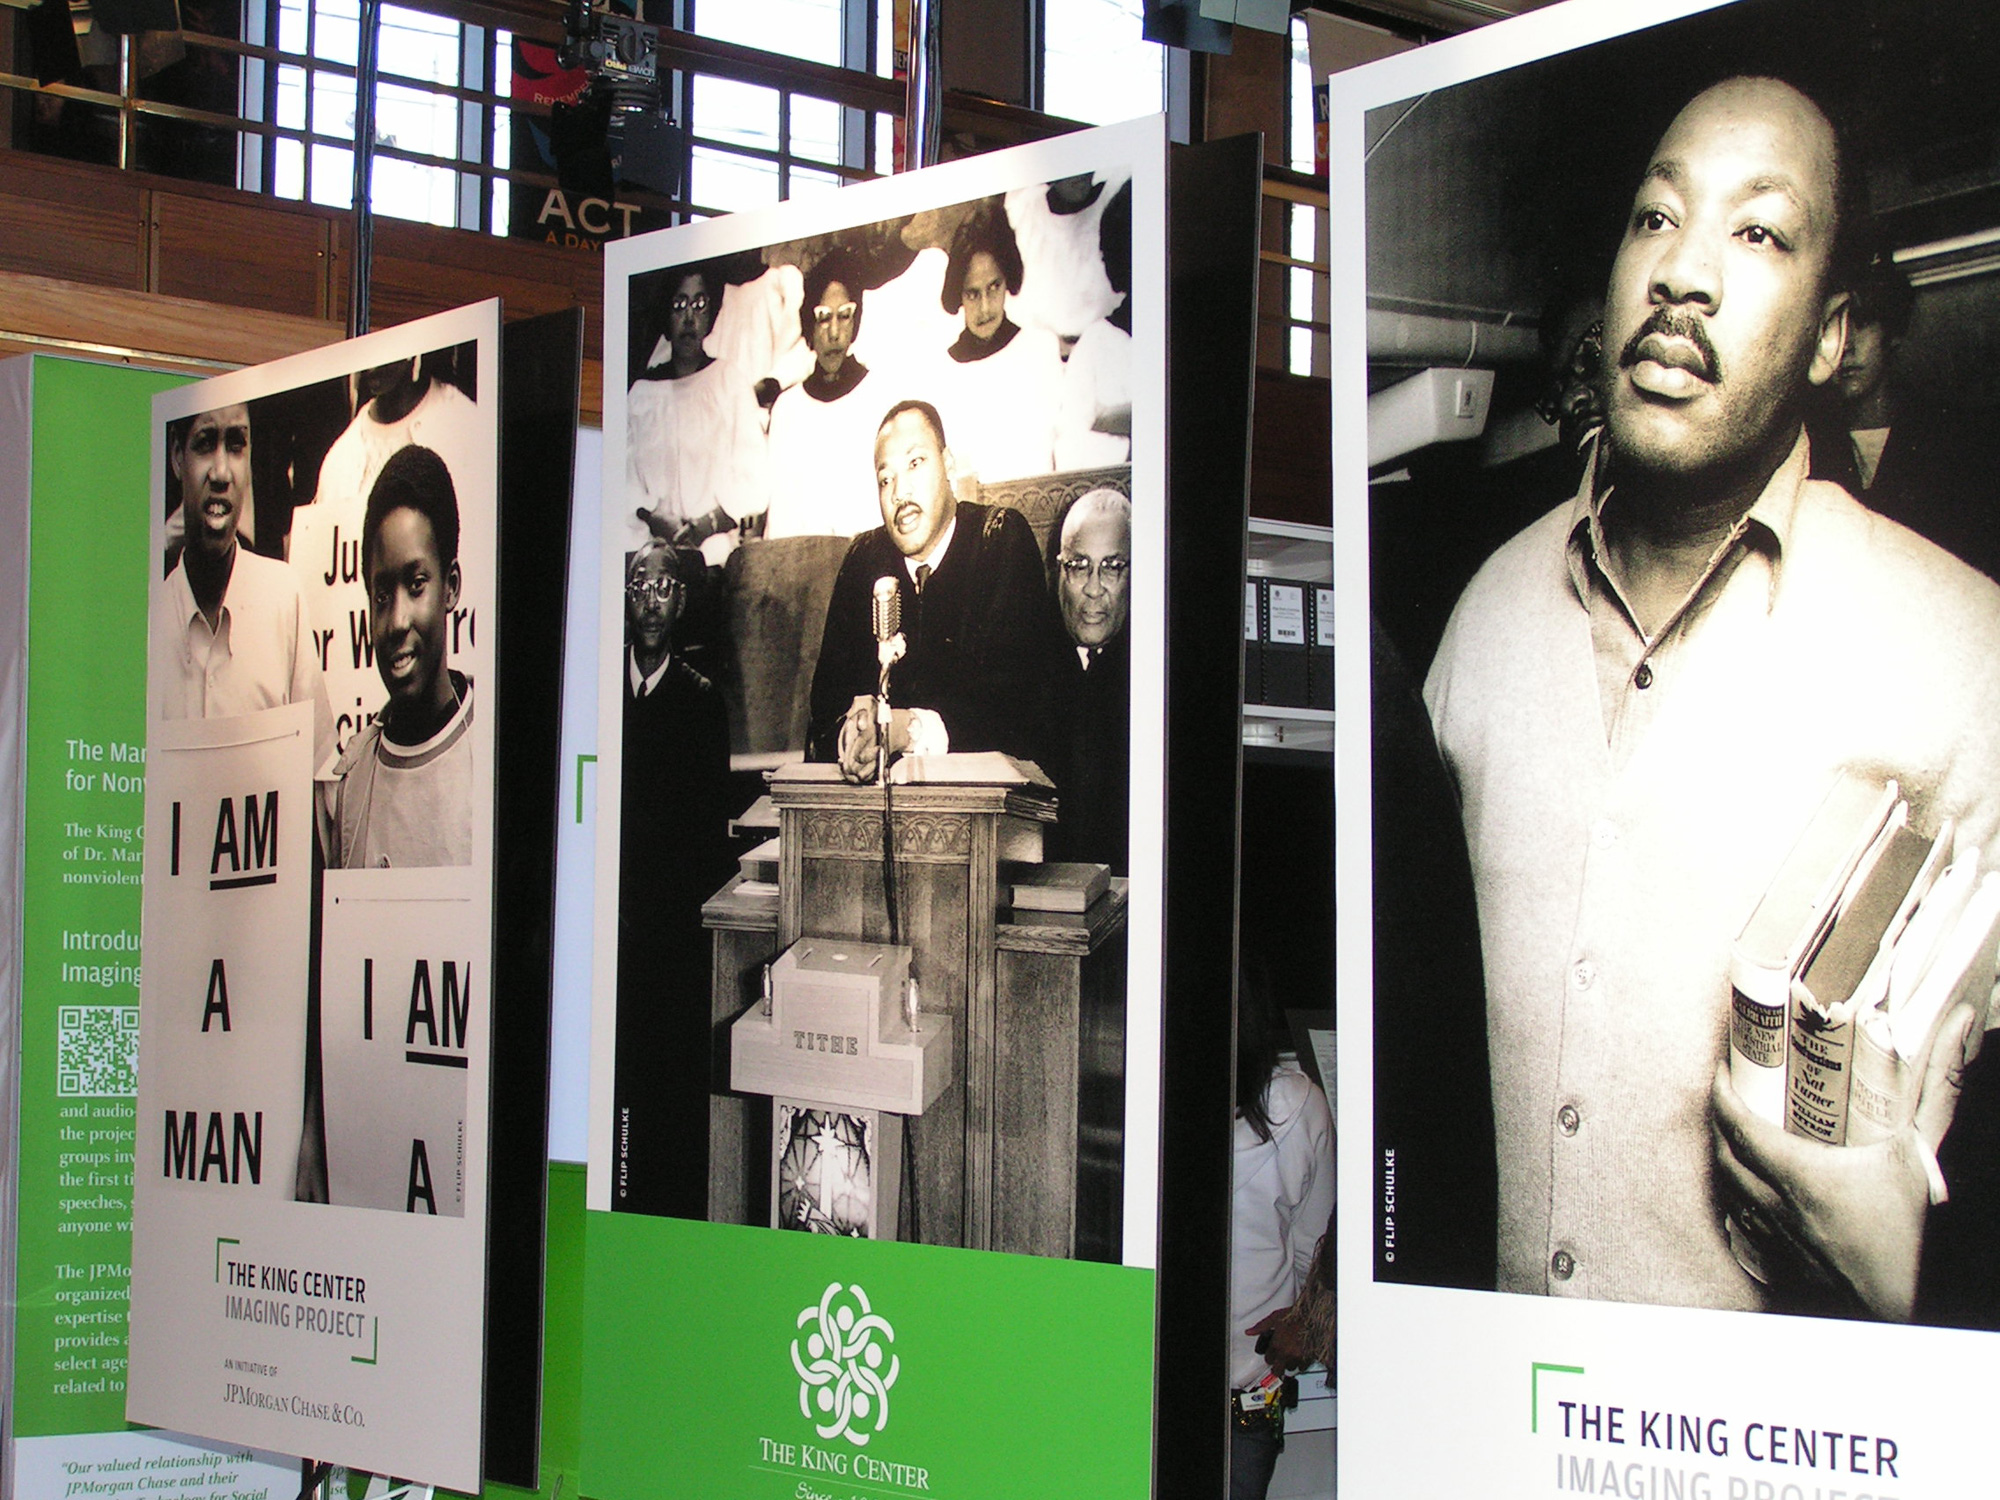 Exhibit at The King Center. Photo by Kalin Thomas